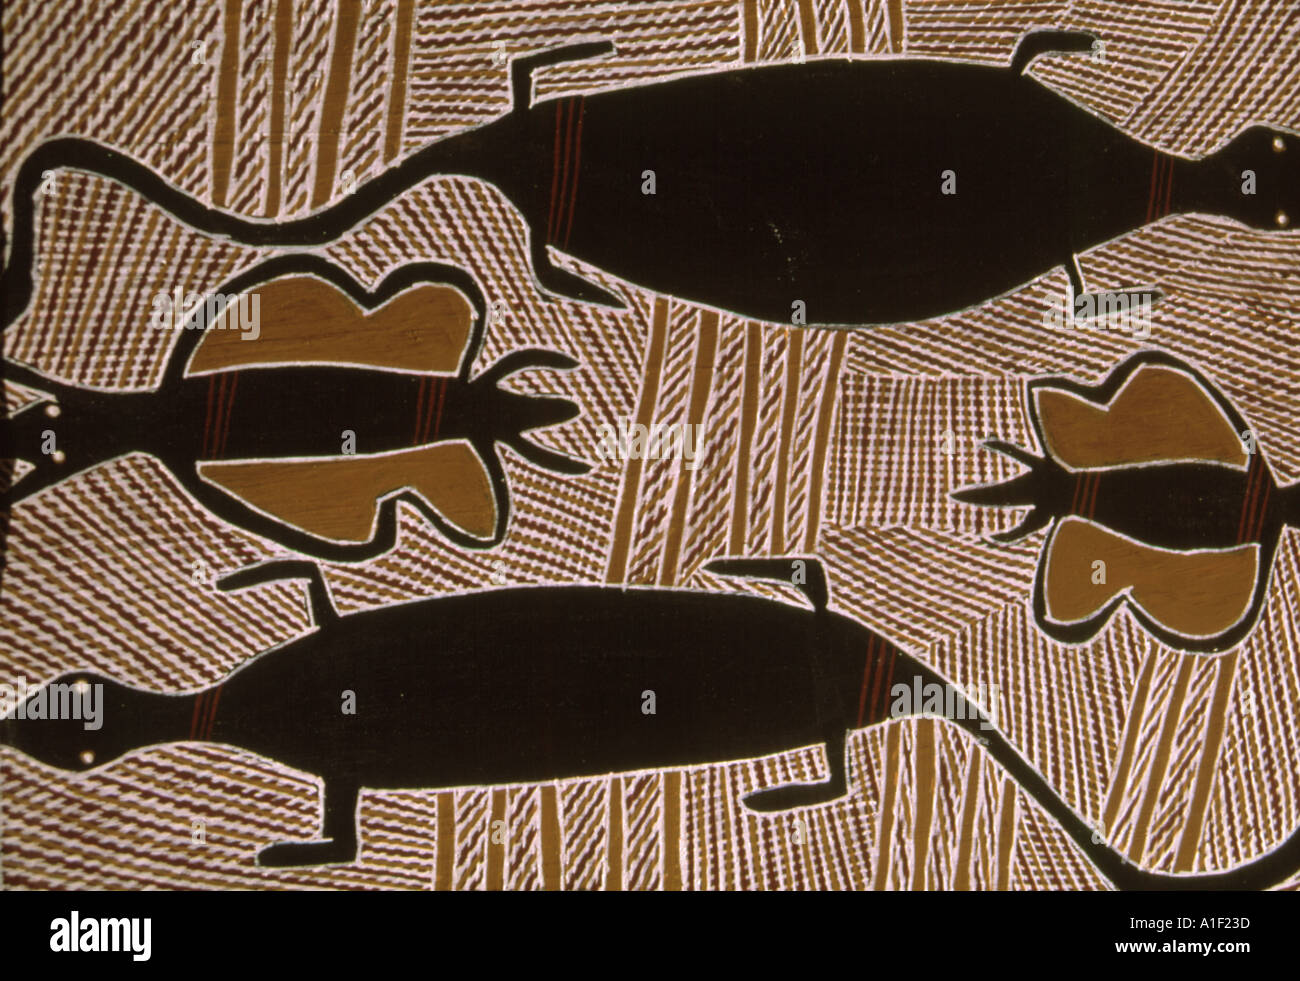 Snakes, goannas, kangaroos and other bush creatures figure in the dreaming theme of  aboriginal paintings in Central Australia. - Stock Image